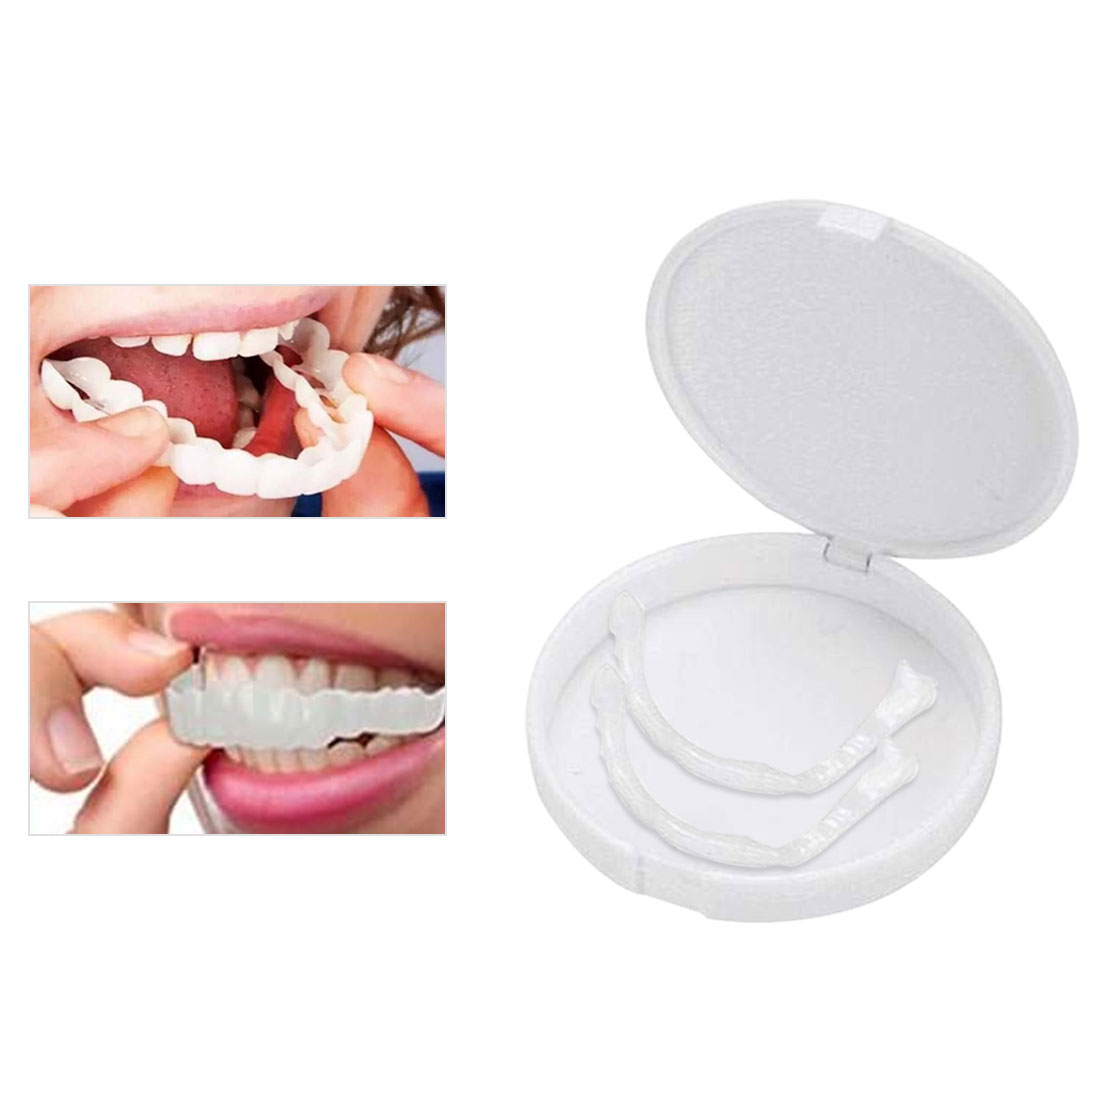 Whitening Snap Perfect Smile Denture Teeth Comfort Fit False Teeth Reusable Teeth Cover Adjustable Flex